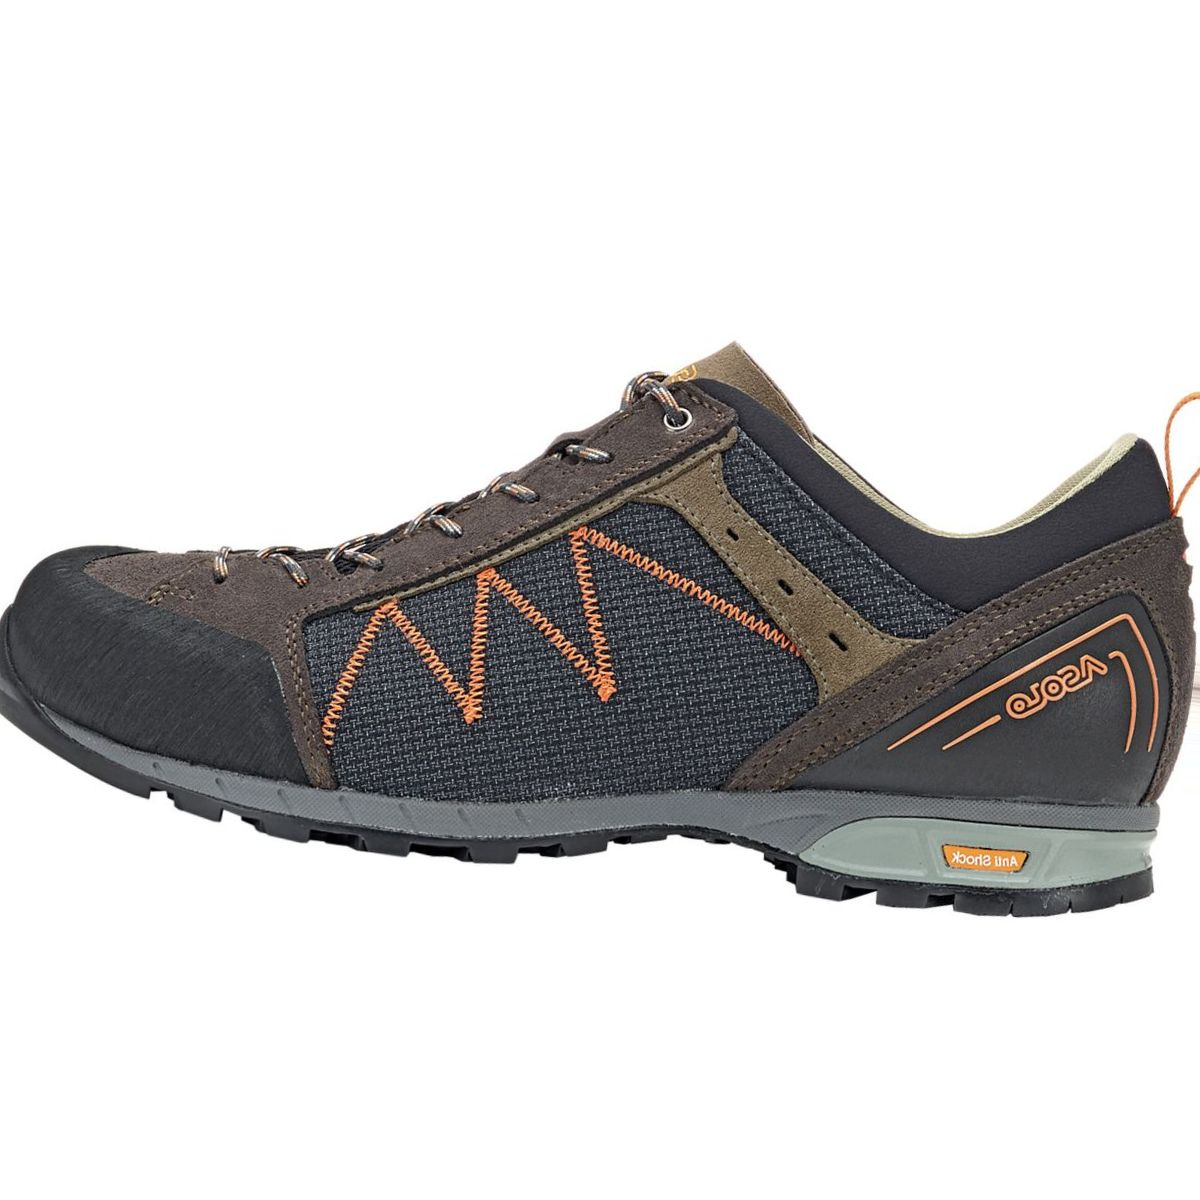 Asolo Ozonic Shoe - Men's